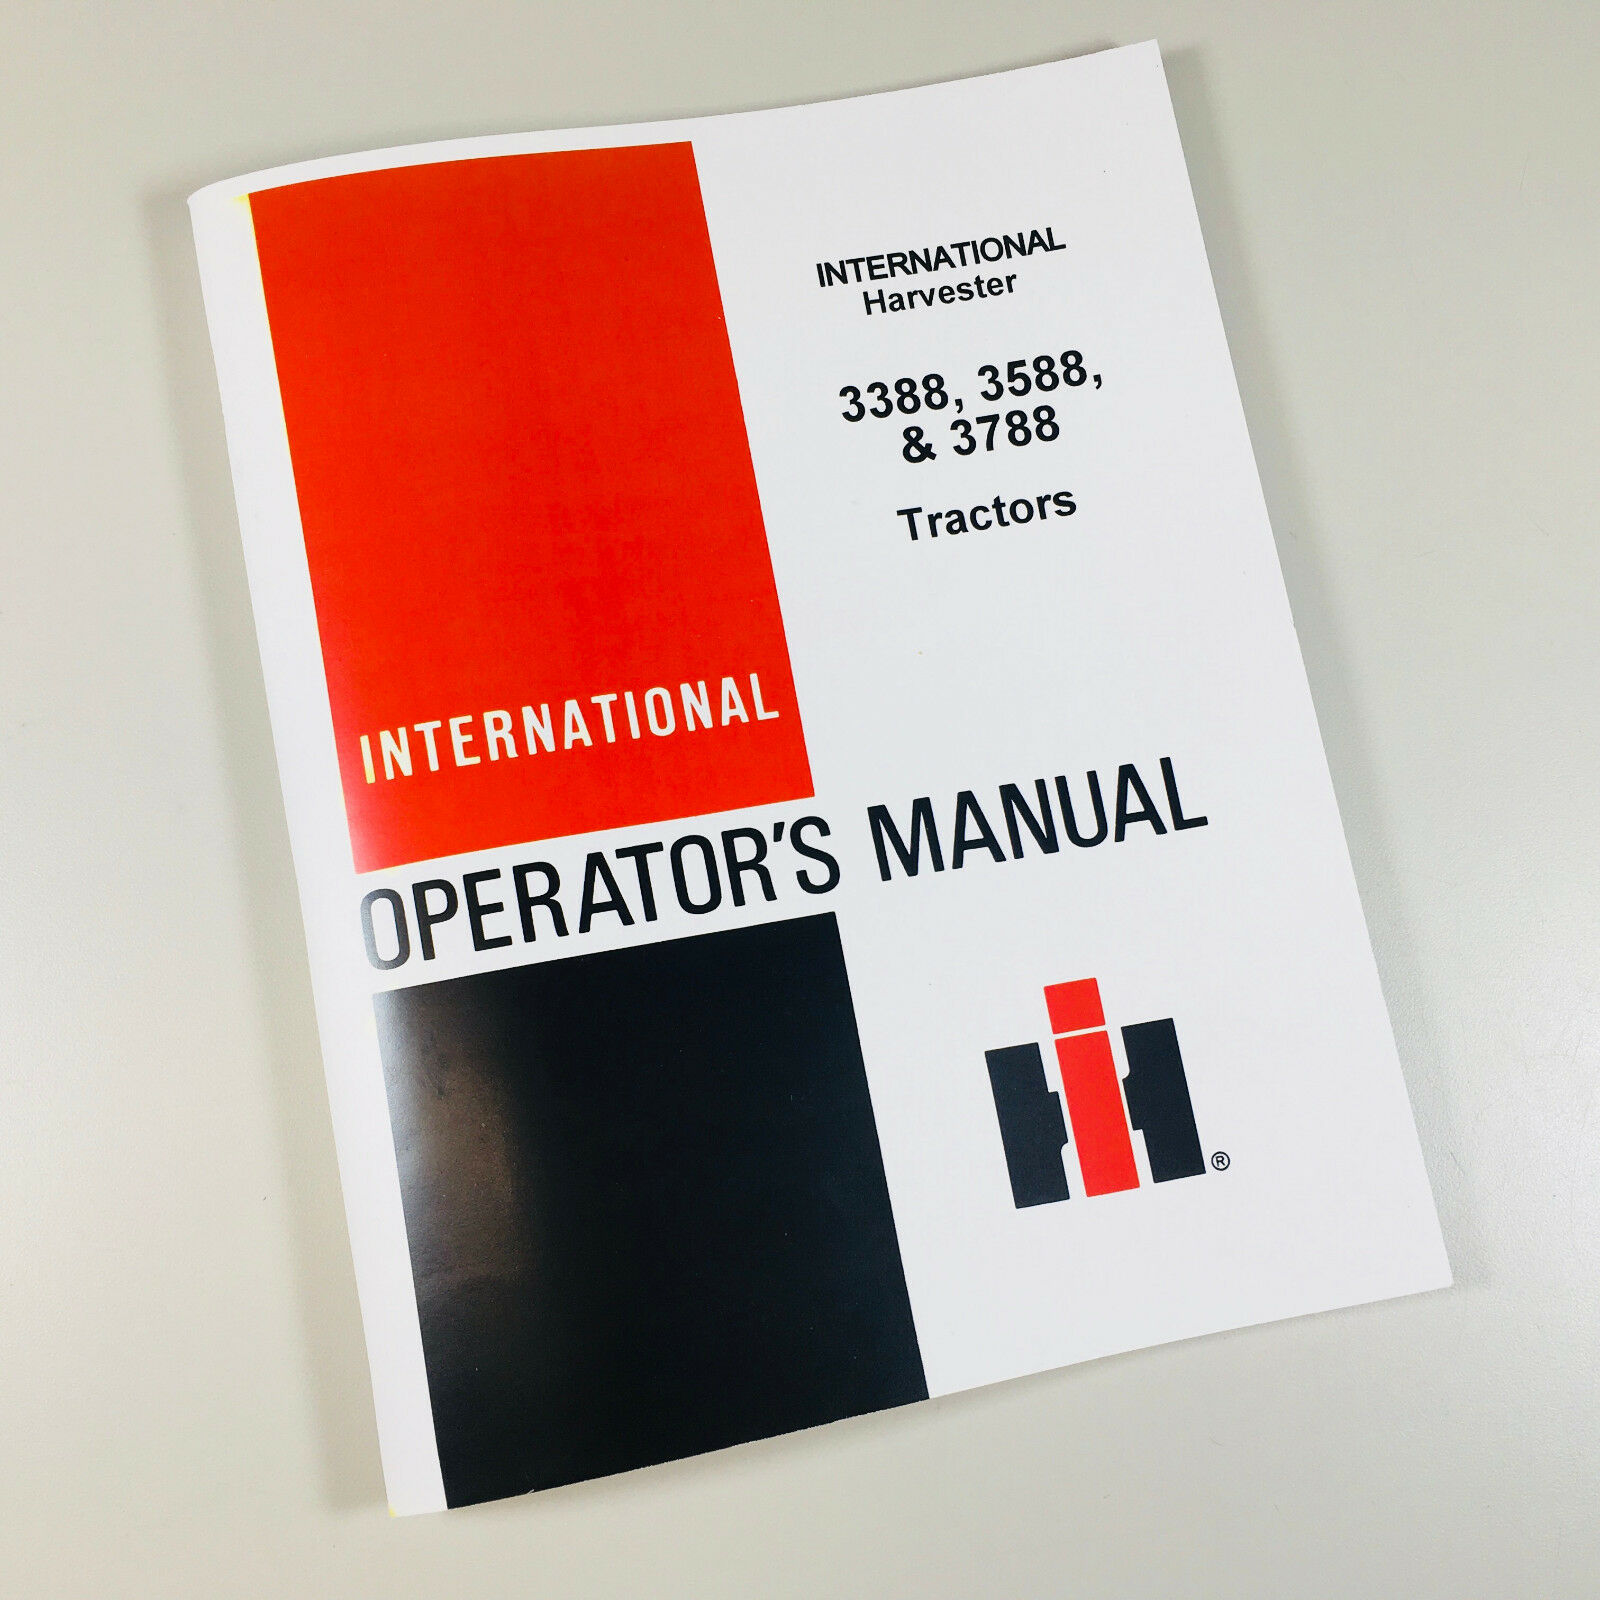 This comprehensive manual includes